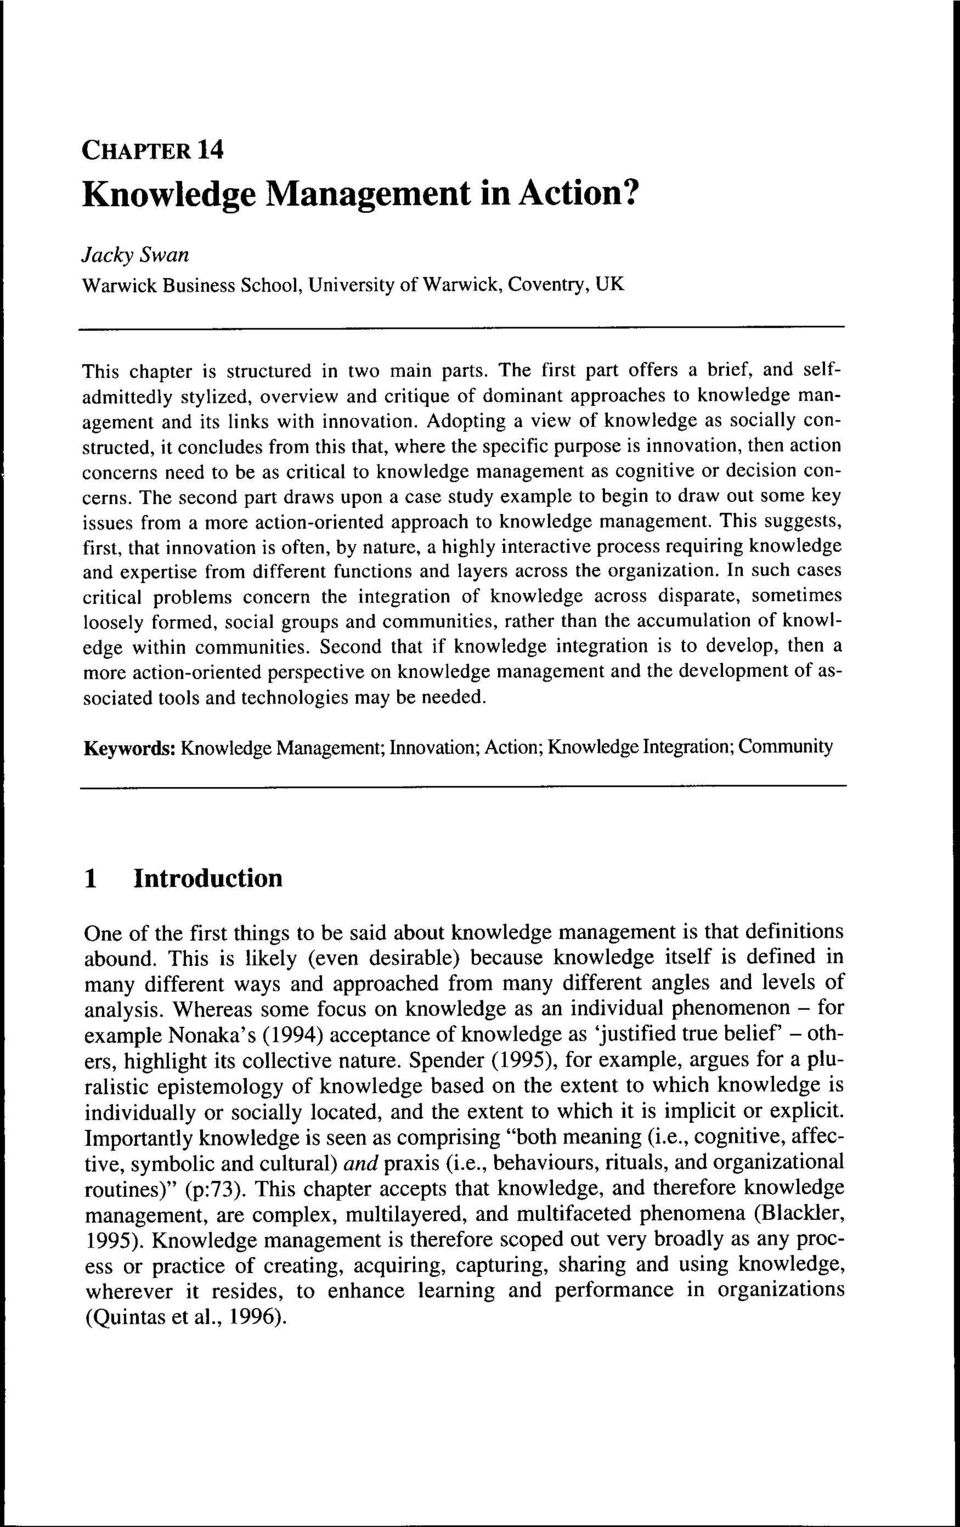 Adopting a view of knowledge as socially constructed, it concludes from this that, where the specific purpose is innovation, then action concerns need to be as critical to knowledge management as